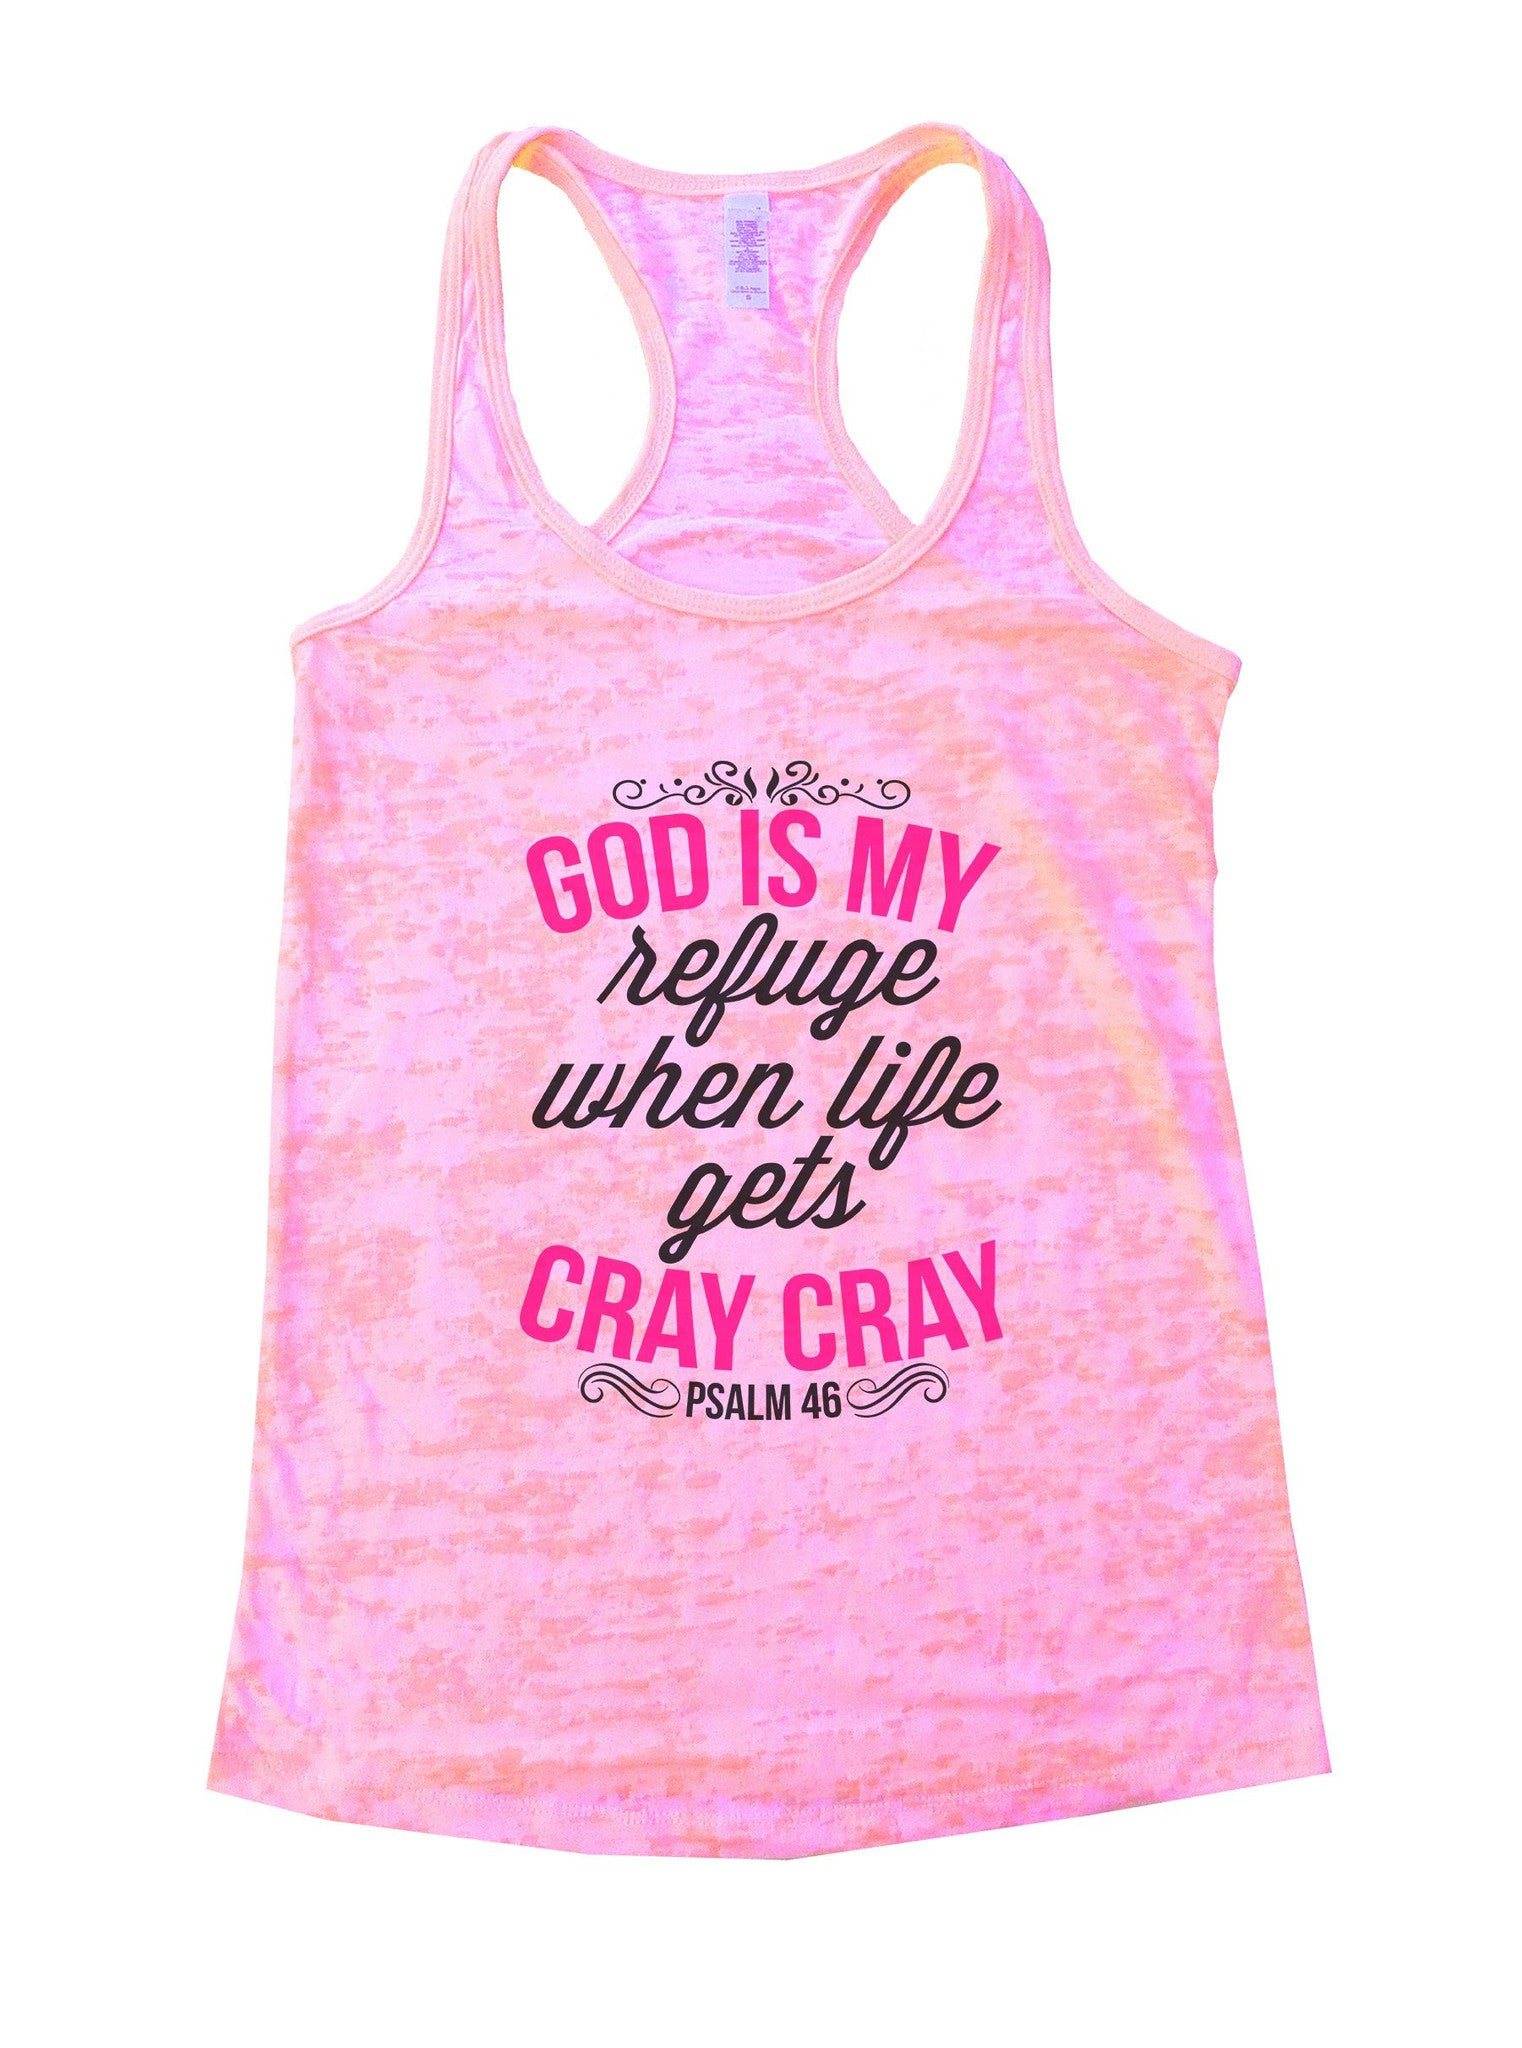 God Is My Refuge When Life Gets Cray Cray Psalm 46 Burnout Tank Top By BurnoutTankTops.com - 1129 - Funny Shirts Tank Tops Burnouts and Triblends  - 3